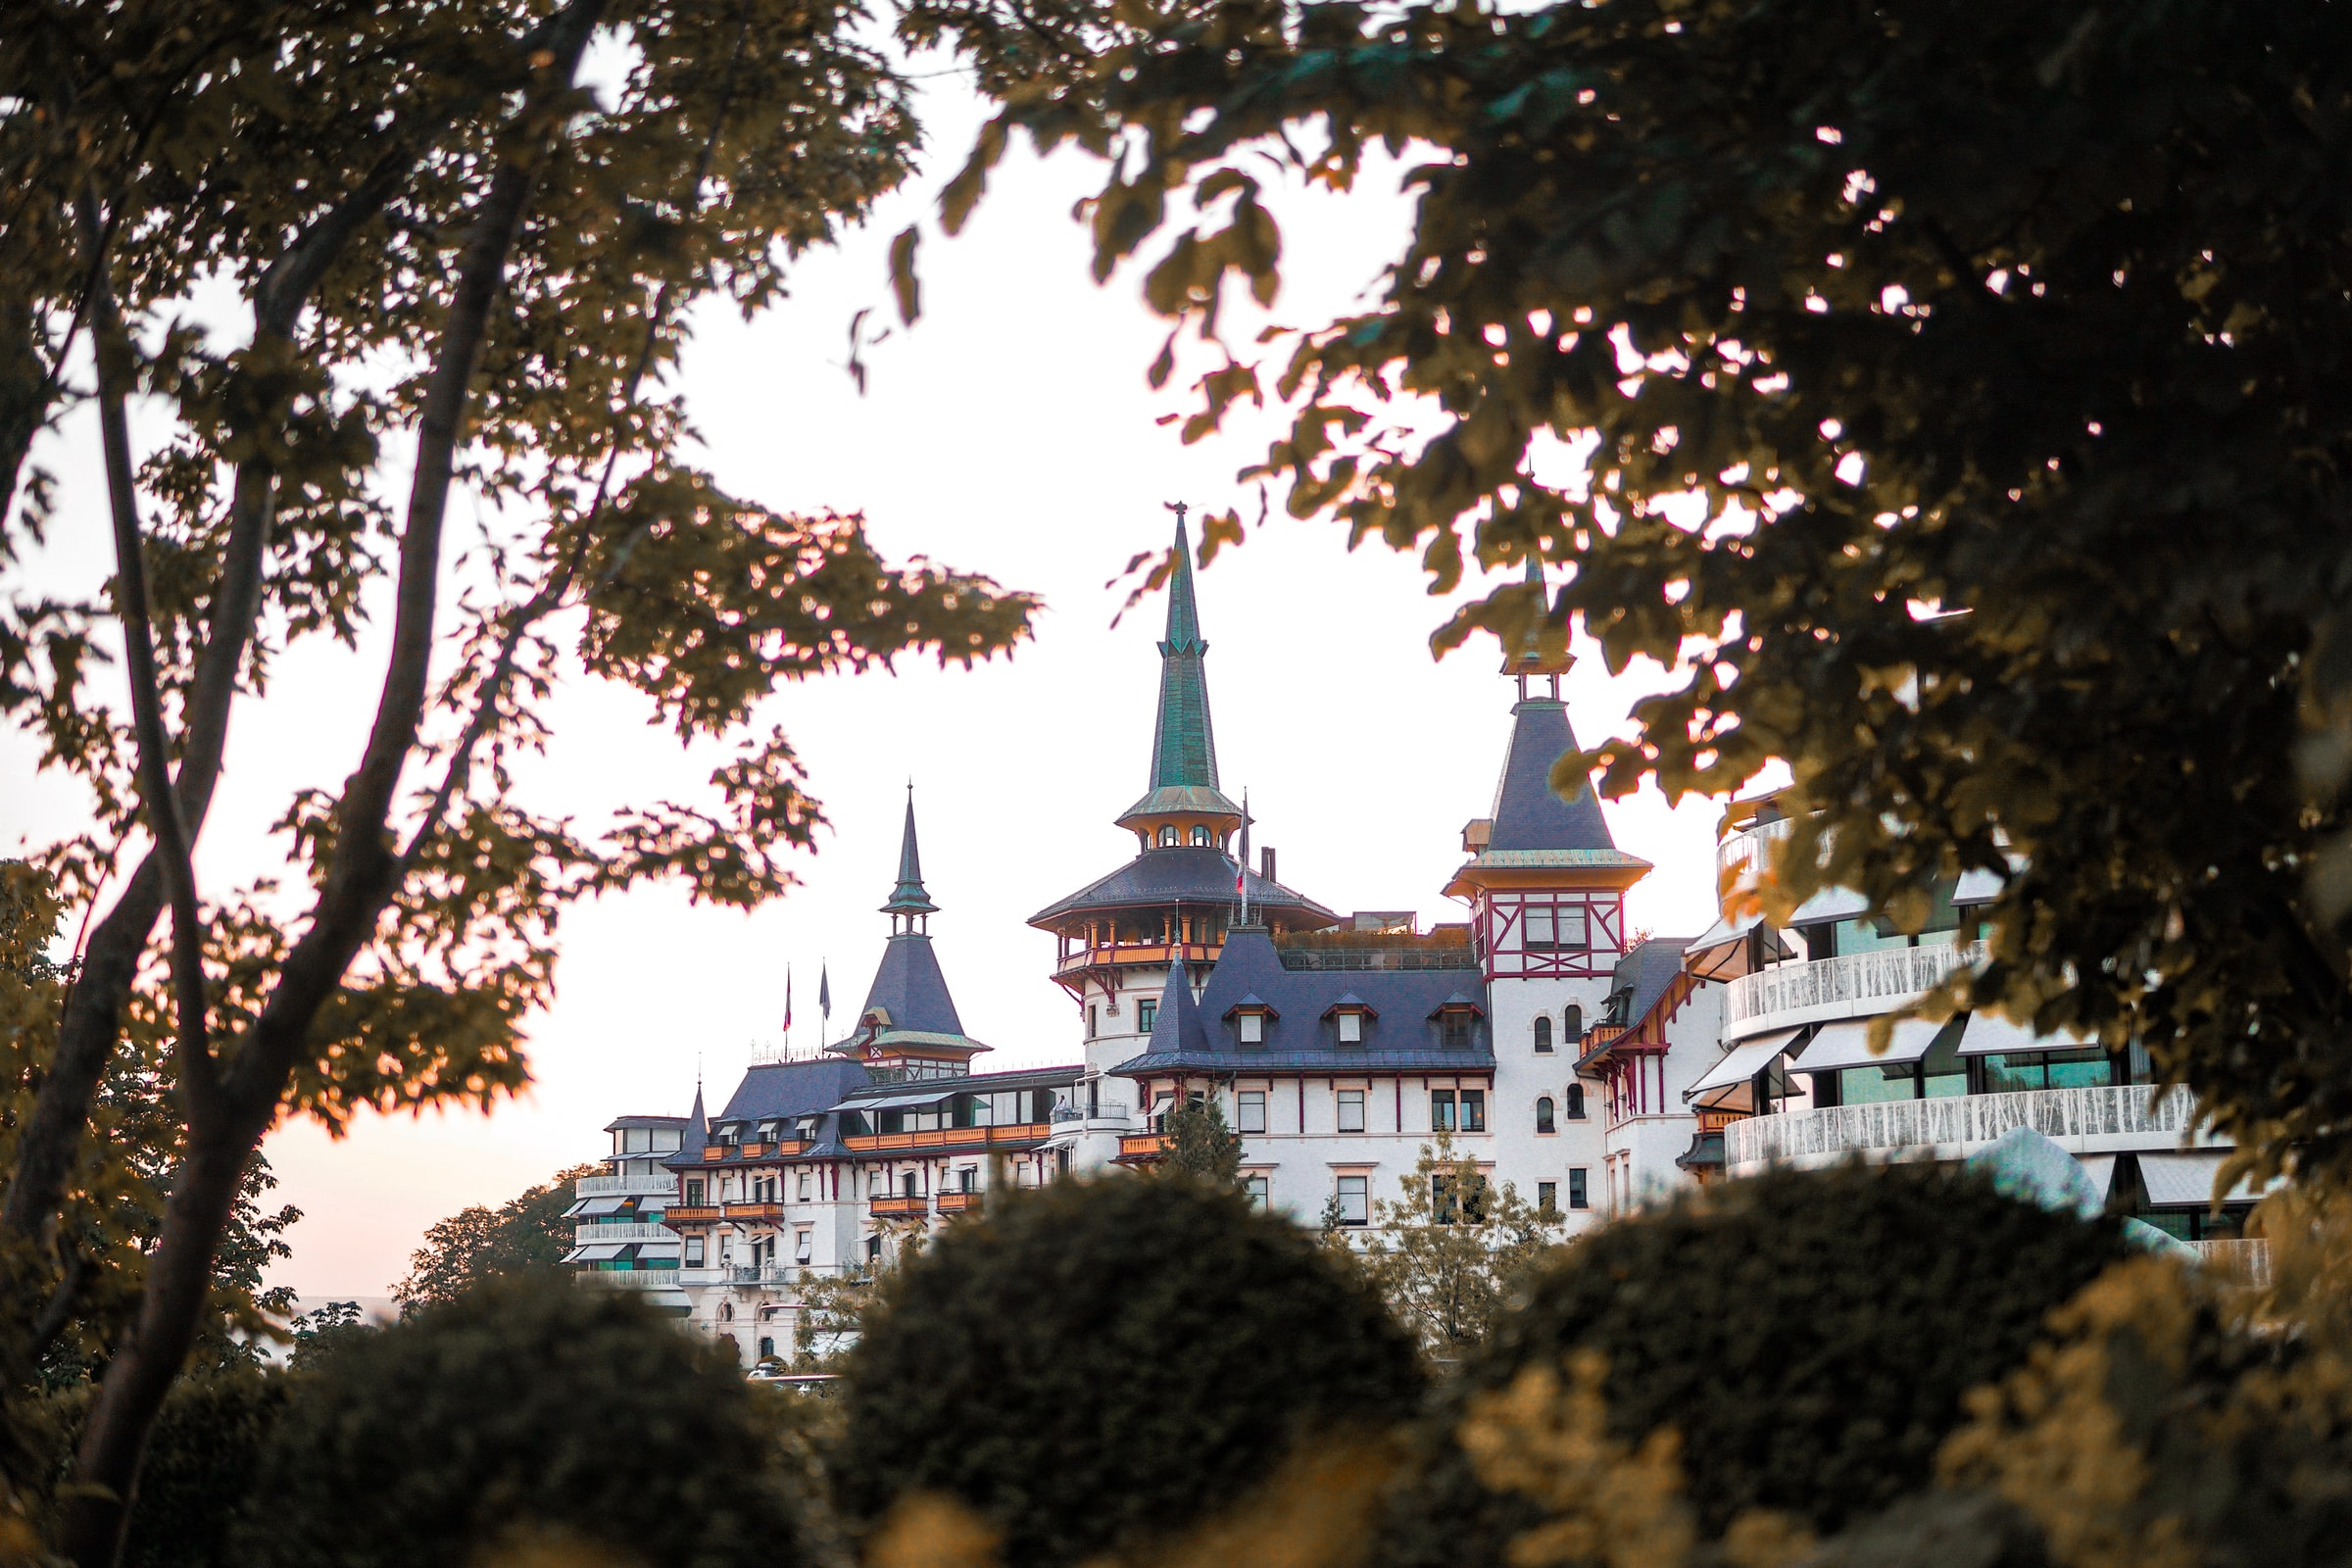 Towers of the exclusive Dolder Grand Spa seen through trees